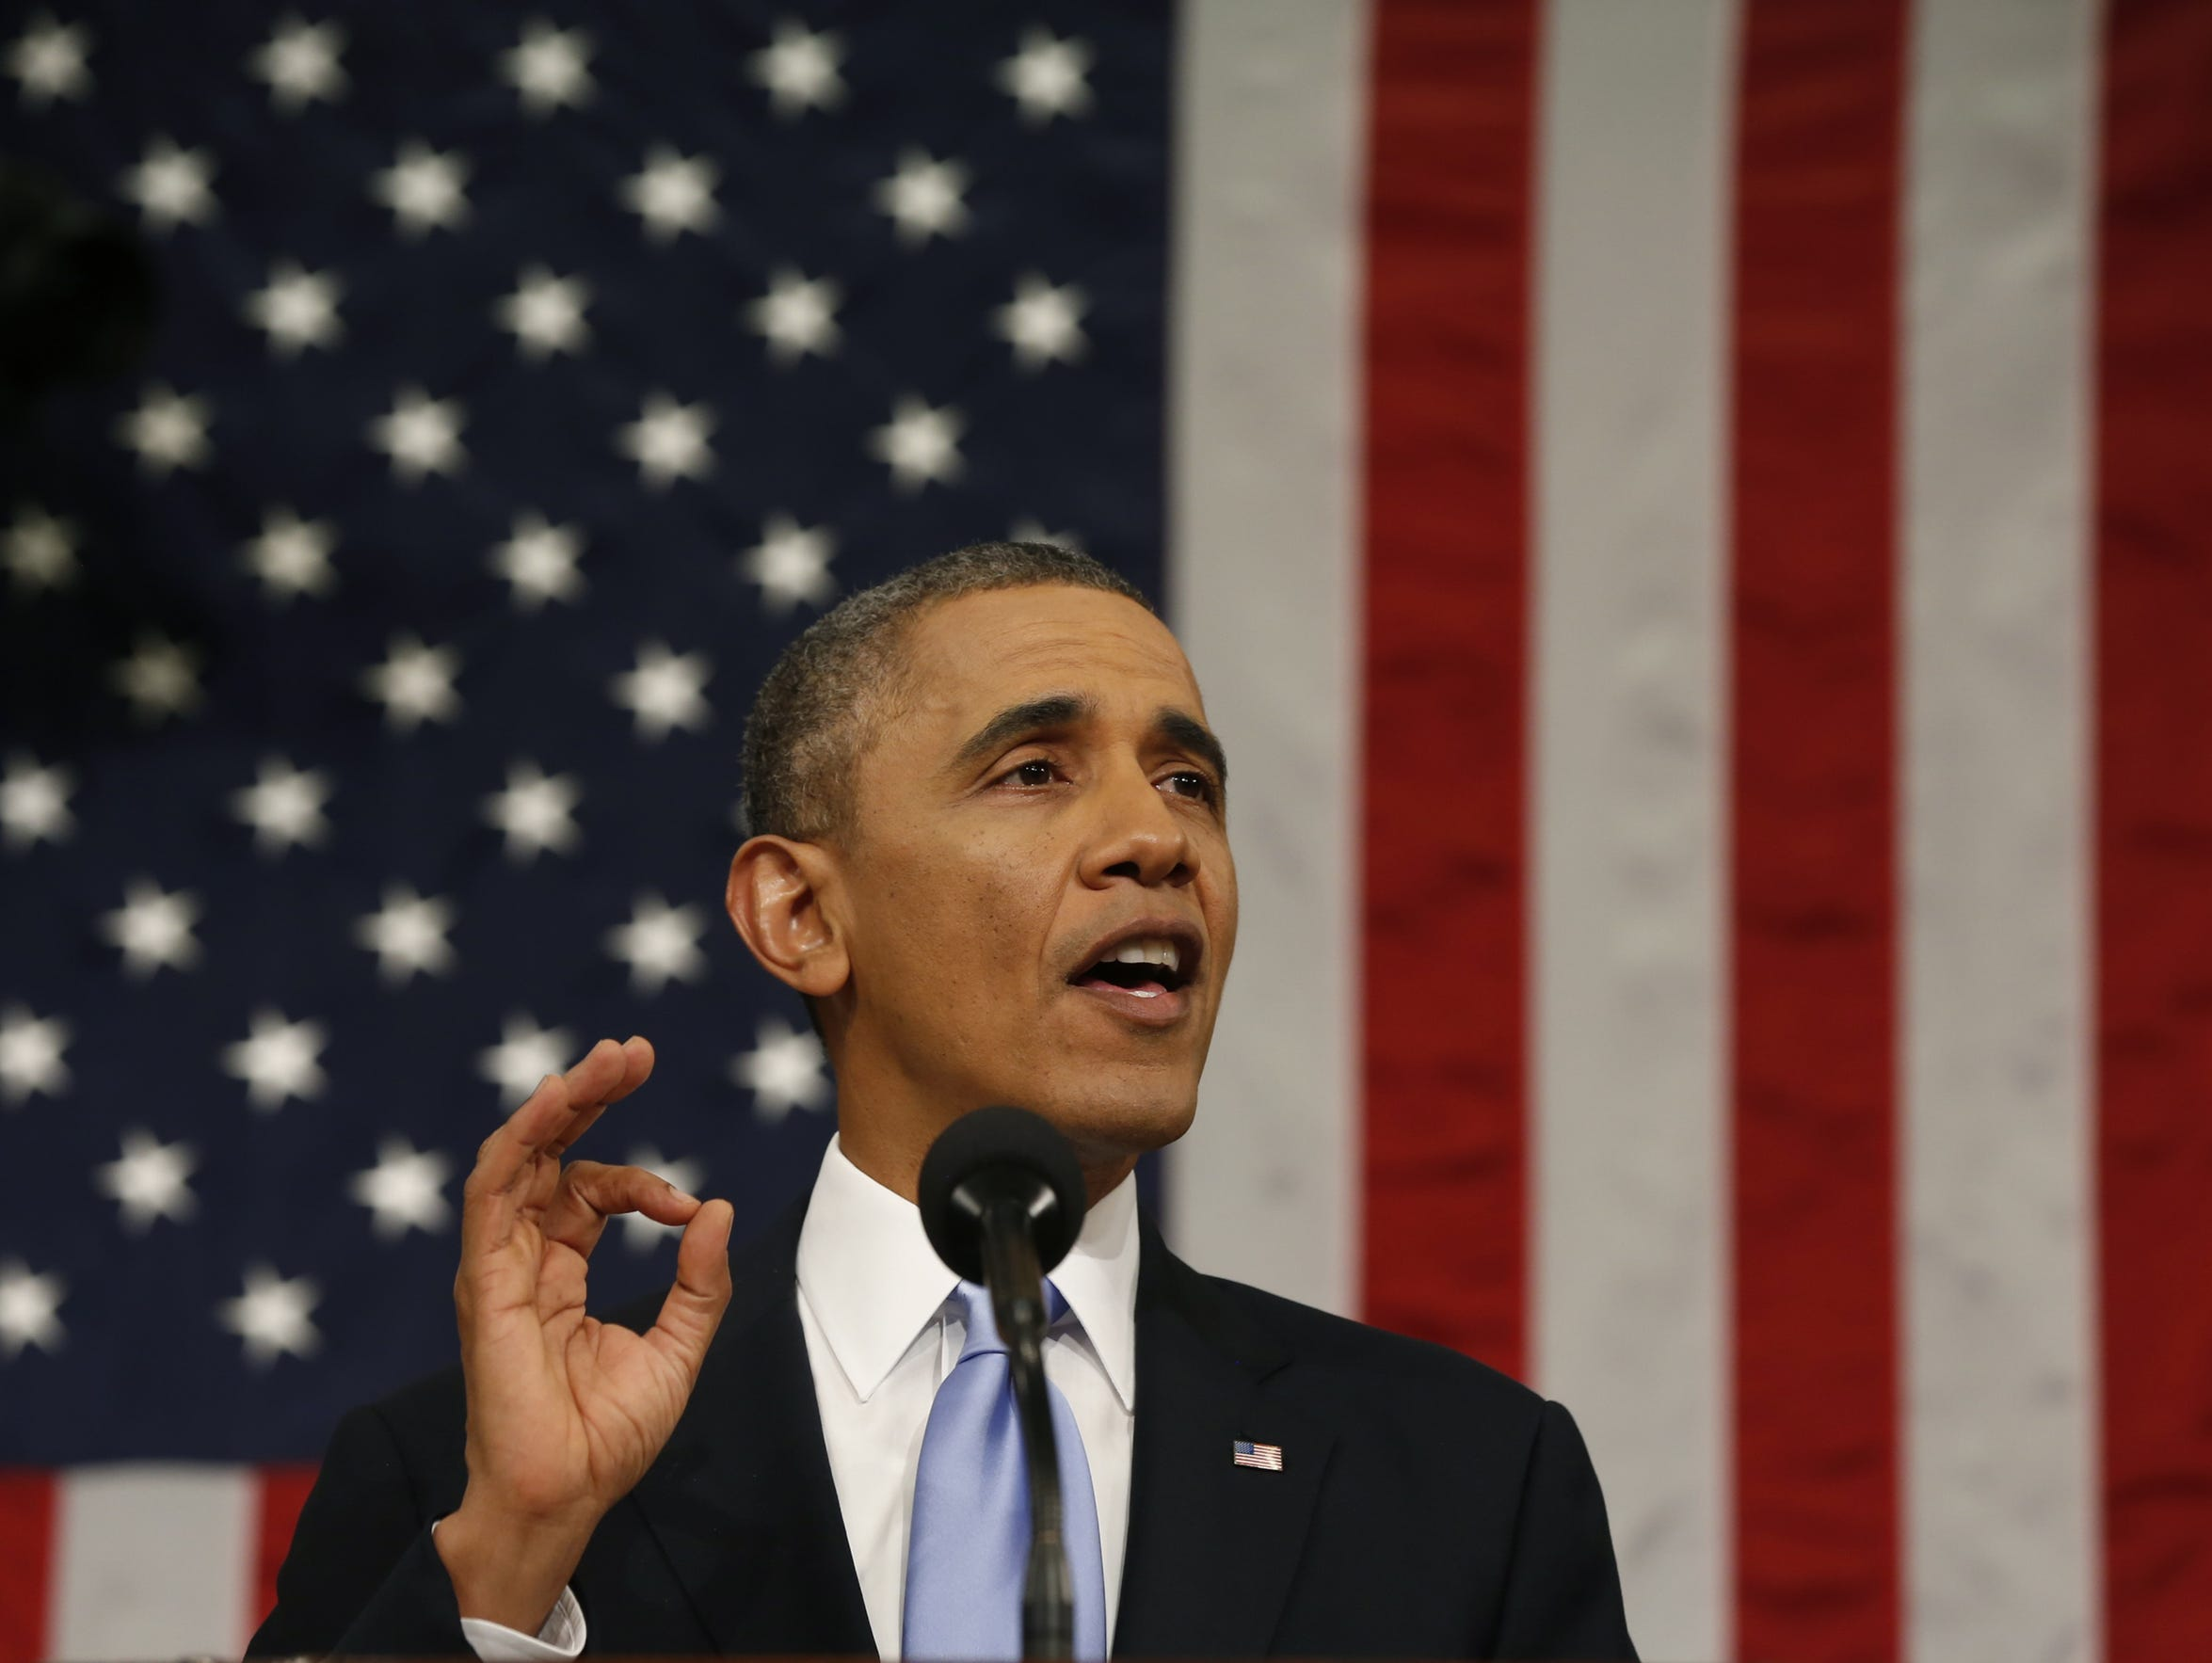 The Obama administration draws attention to another